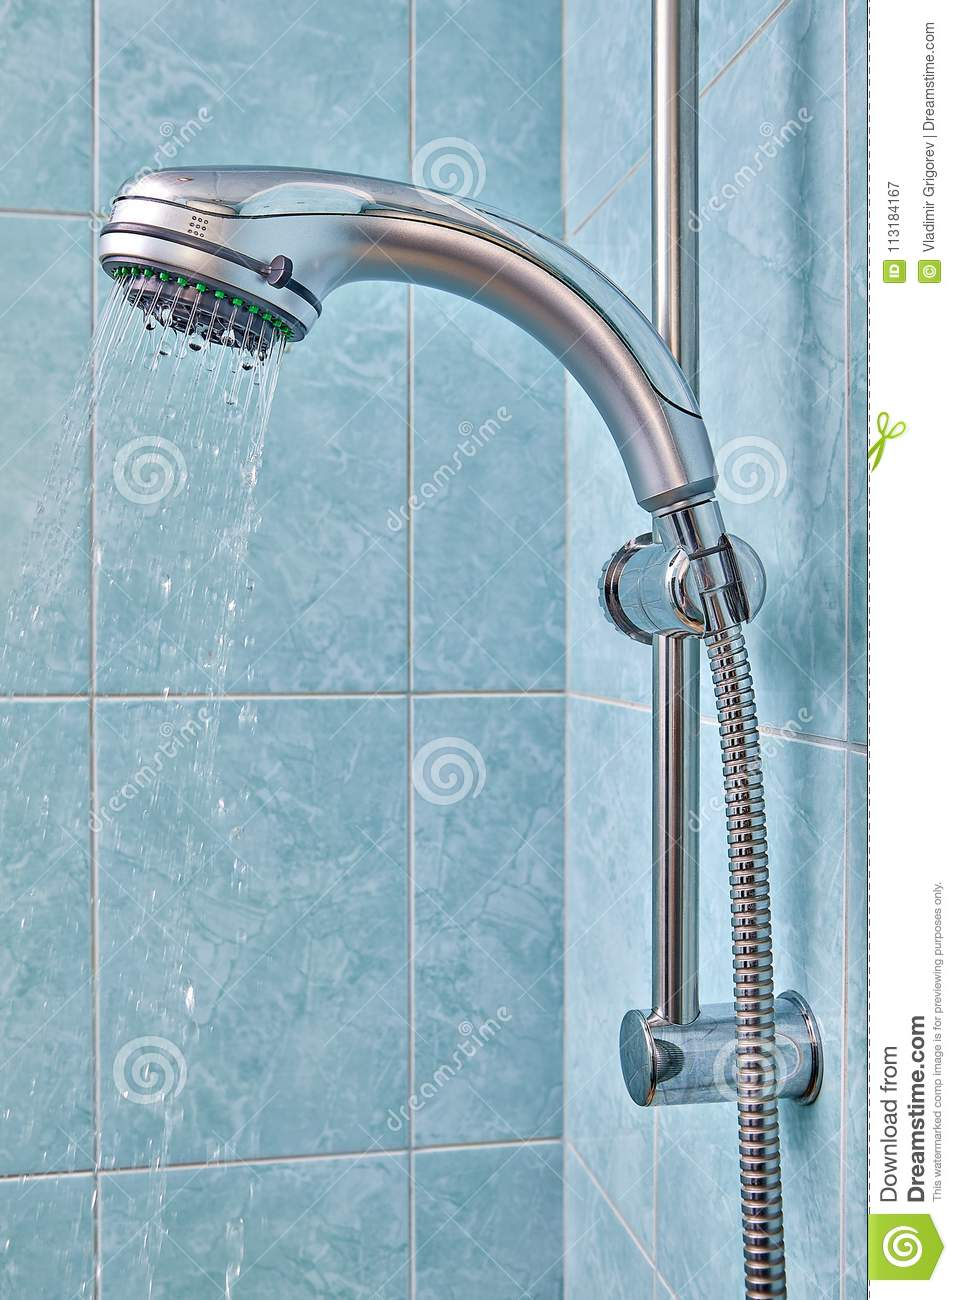 Shower Holder With Flexible Hose In The Bathroom, Water Flows. Stock ...